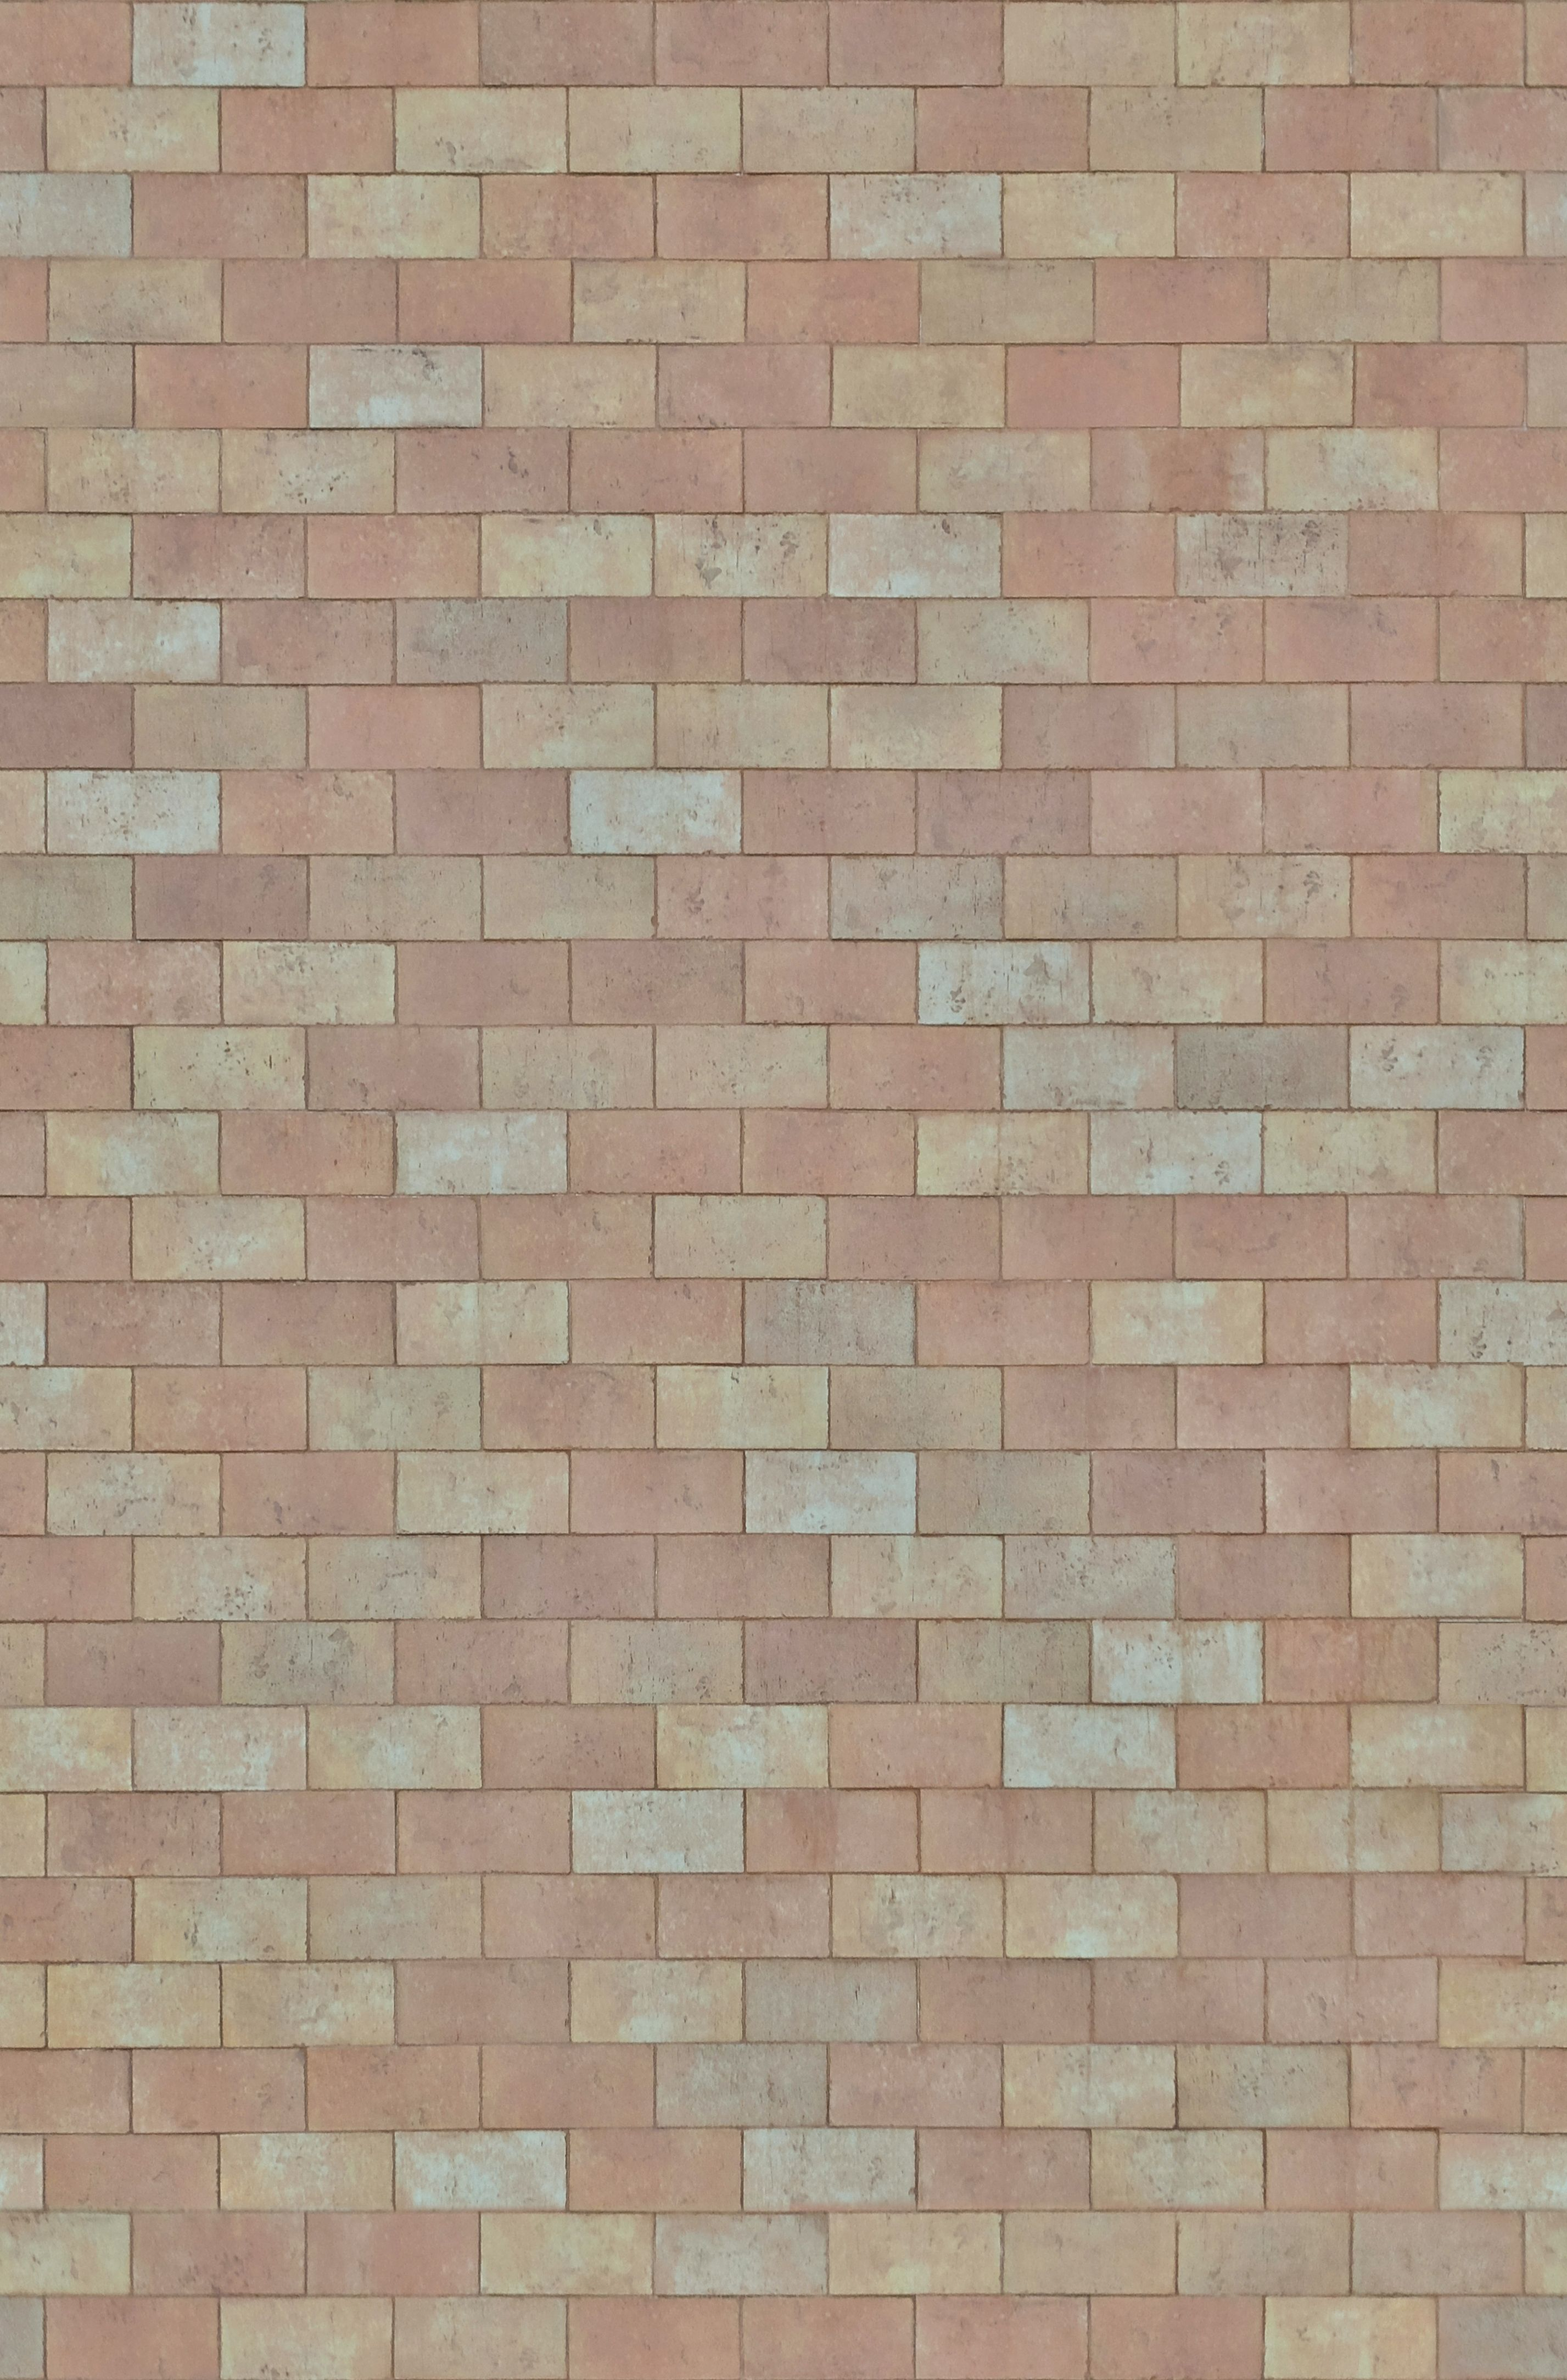 Ceramic brick tiles architextures materials textures ceramic brick tiles architextures dailygadgetfo Gallery